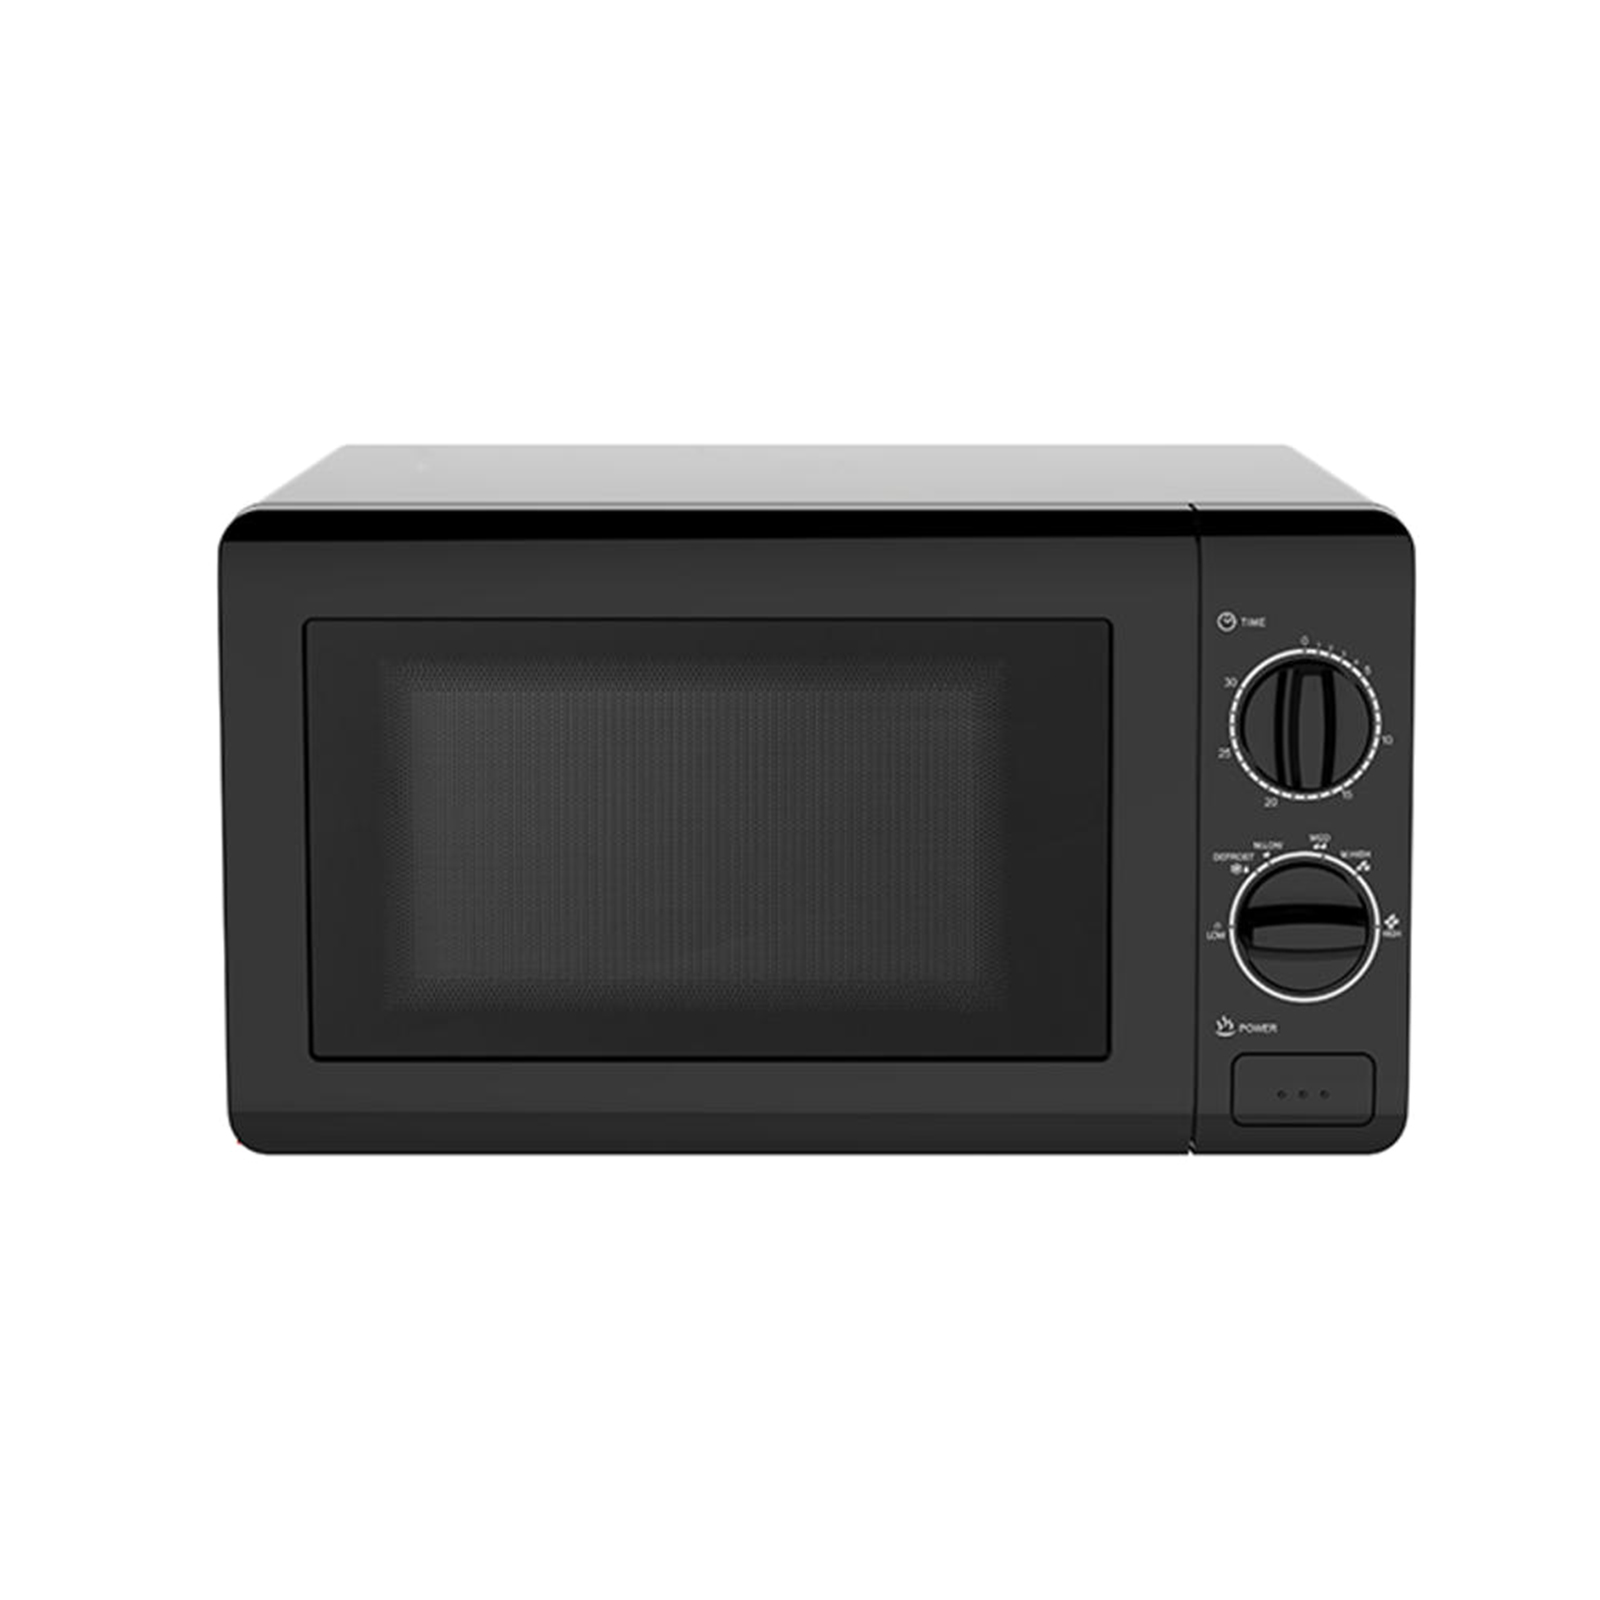 countertop microwaves 0 7 cu ft and